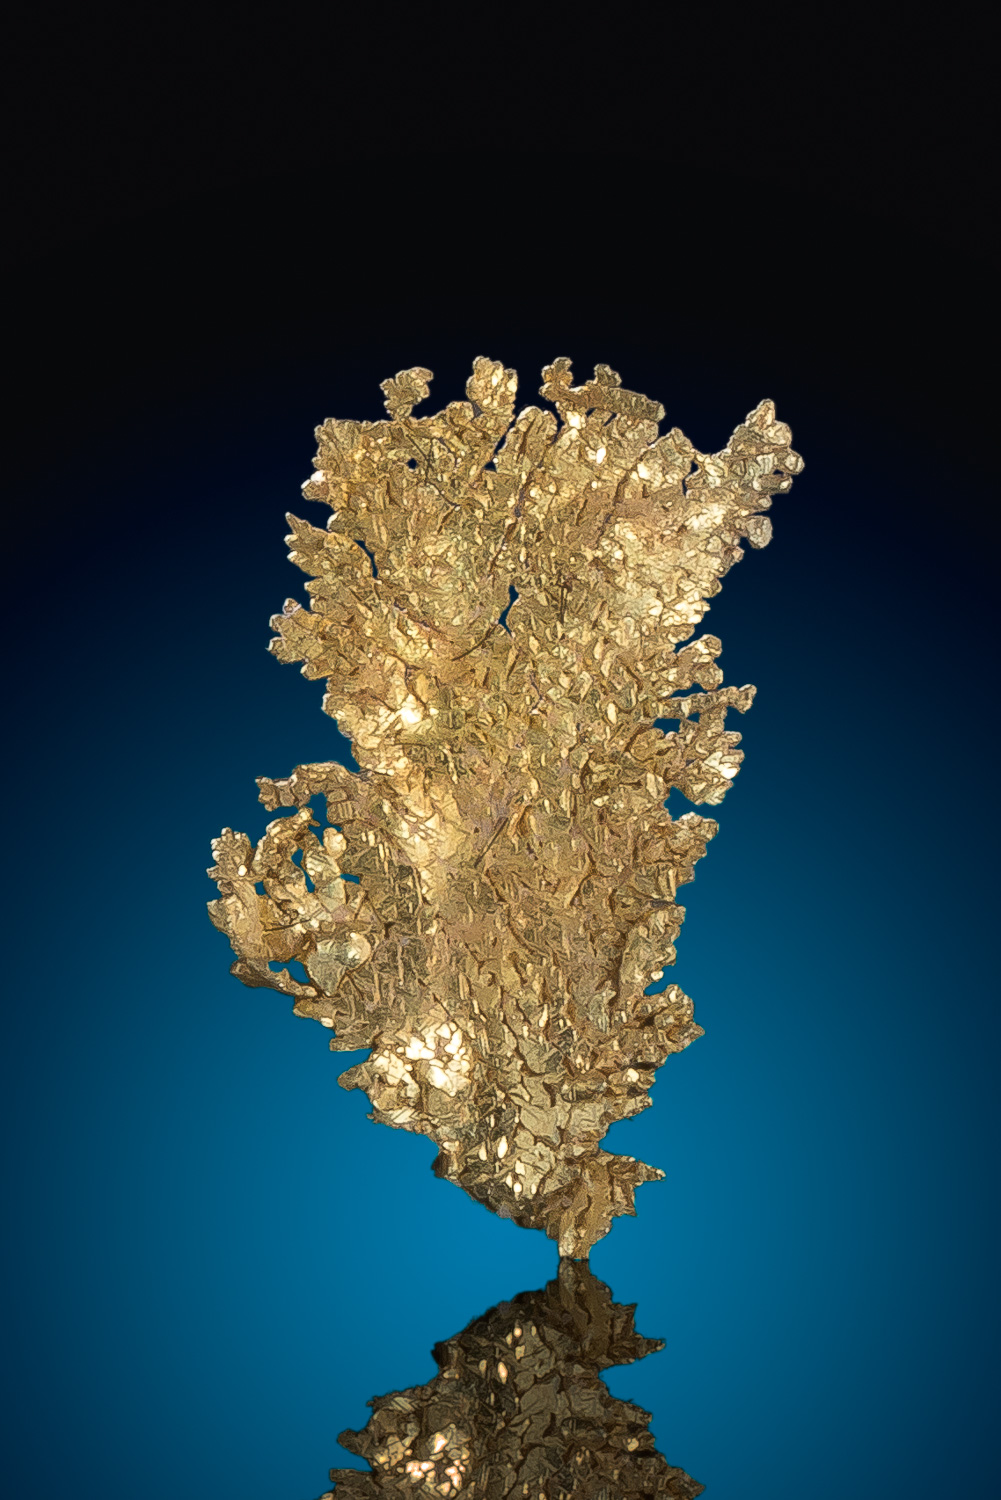 Intricate Leaf Gold Specimen - Well Crystalized - Nevada